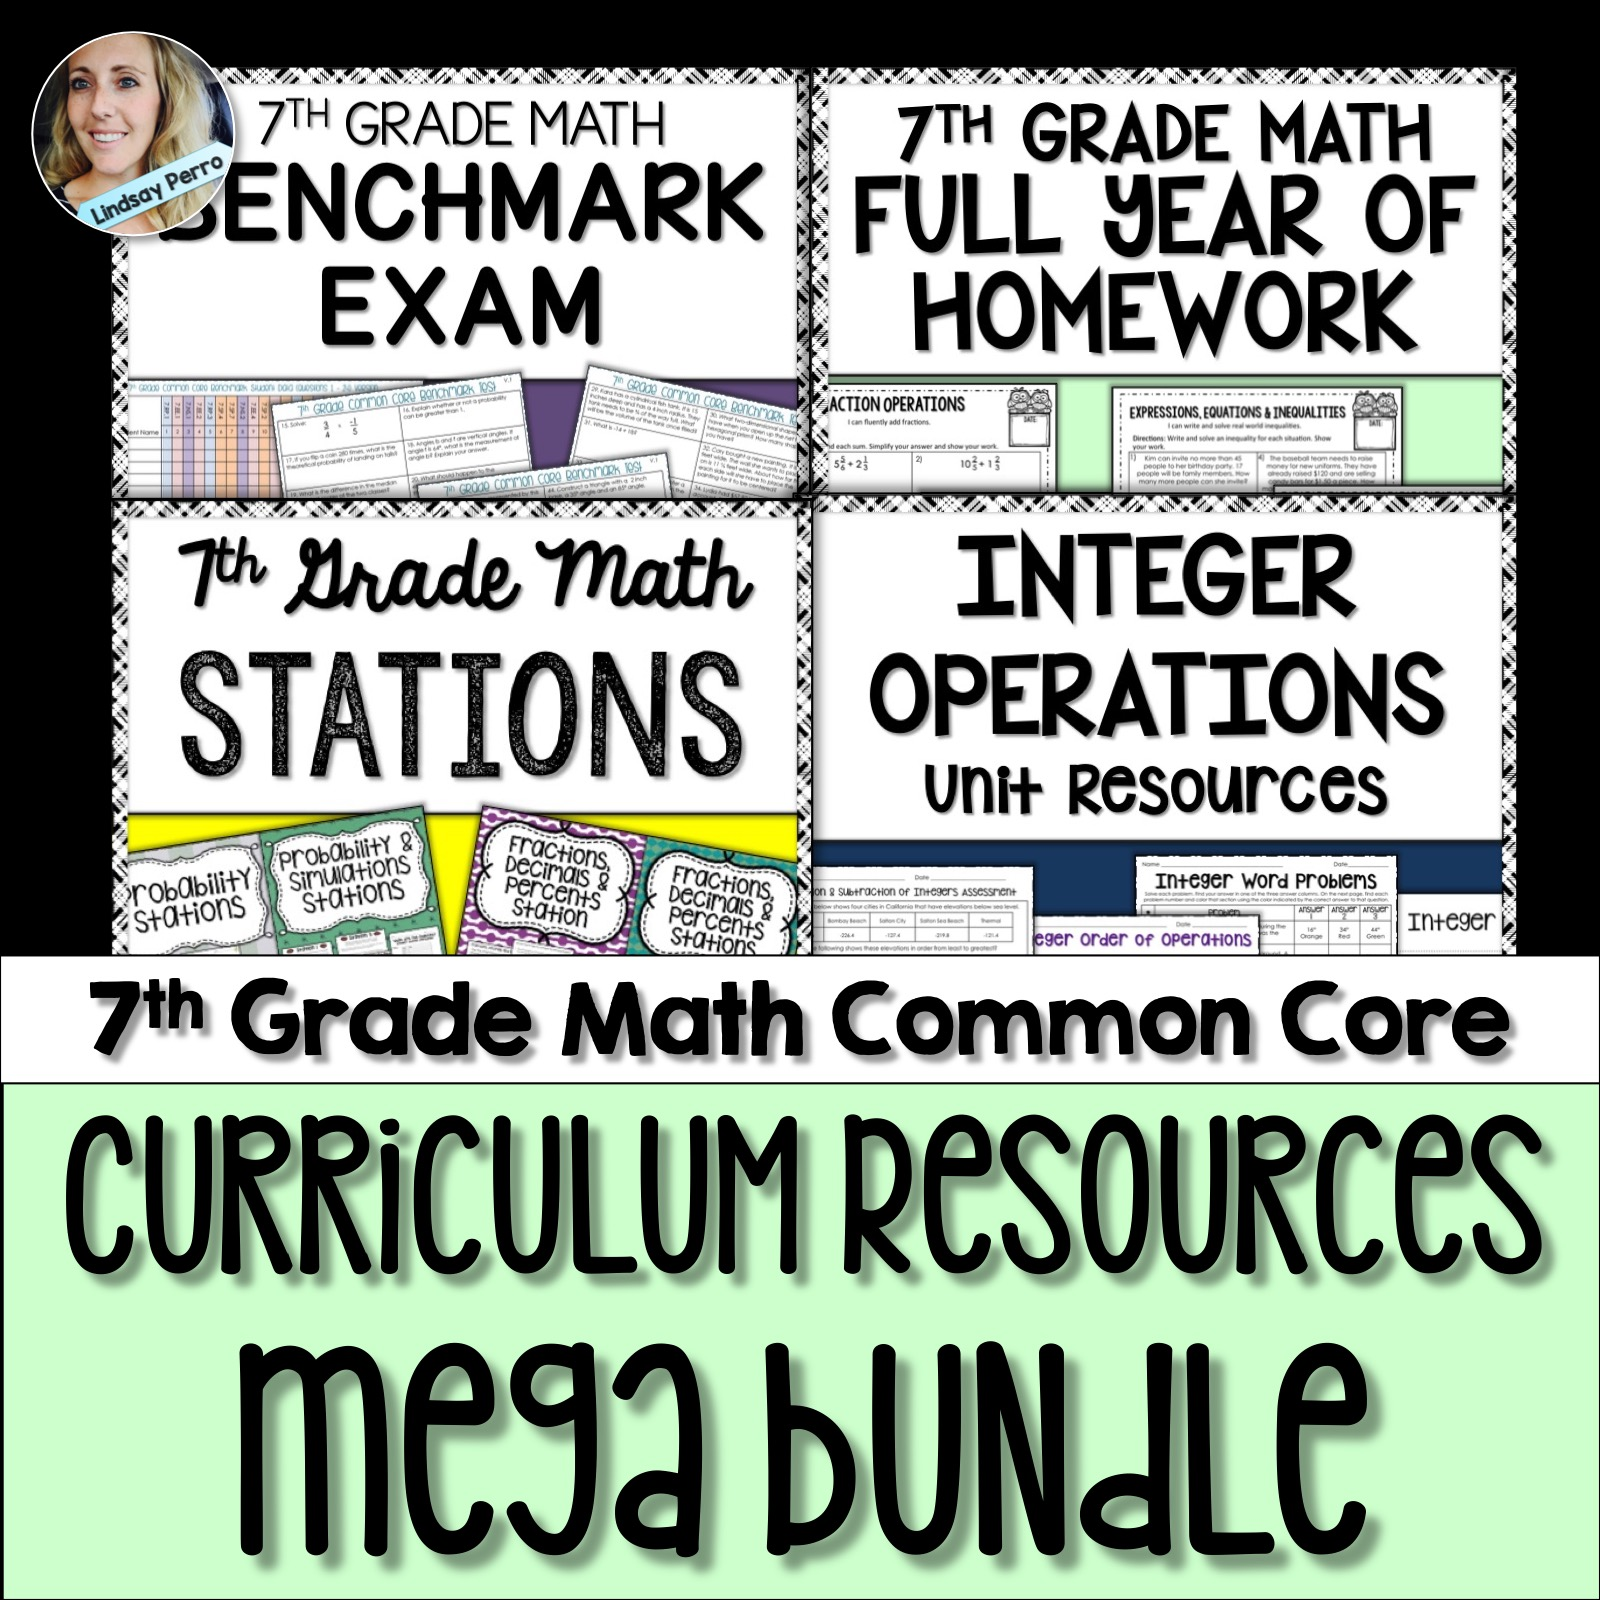 7th Grade Math Curriculum Resources Activity Bundle